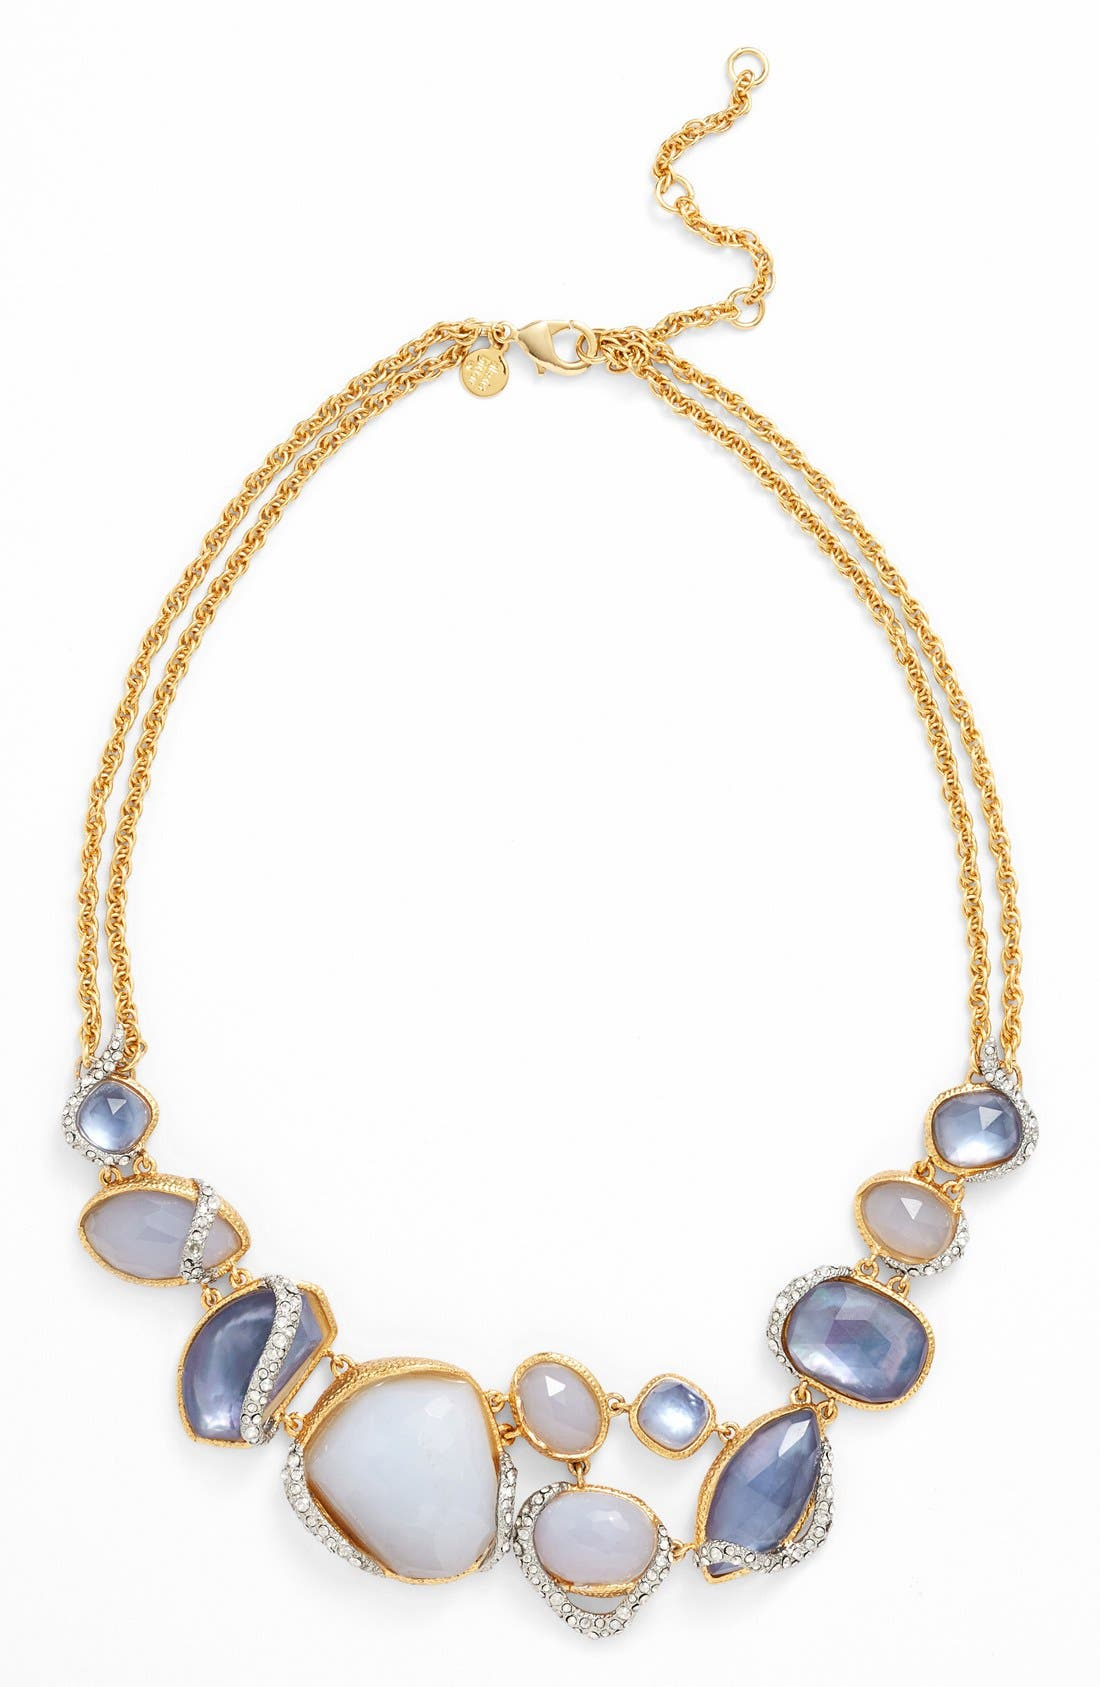 Alternate Image 1 Selected - Alexis Bittar 'Elements - Maldivian' Bib Necklace